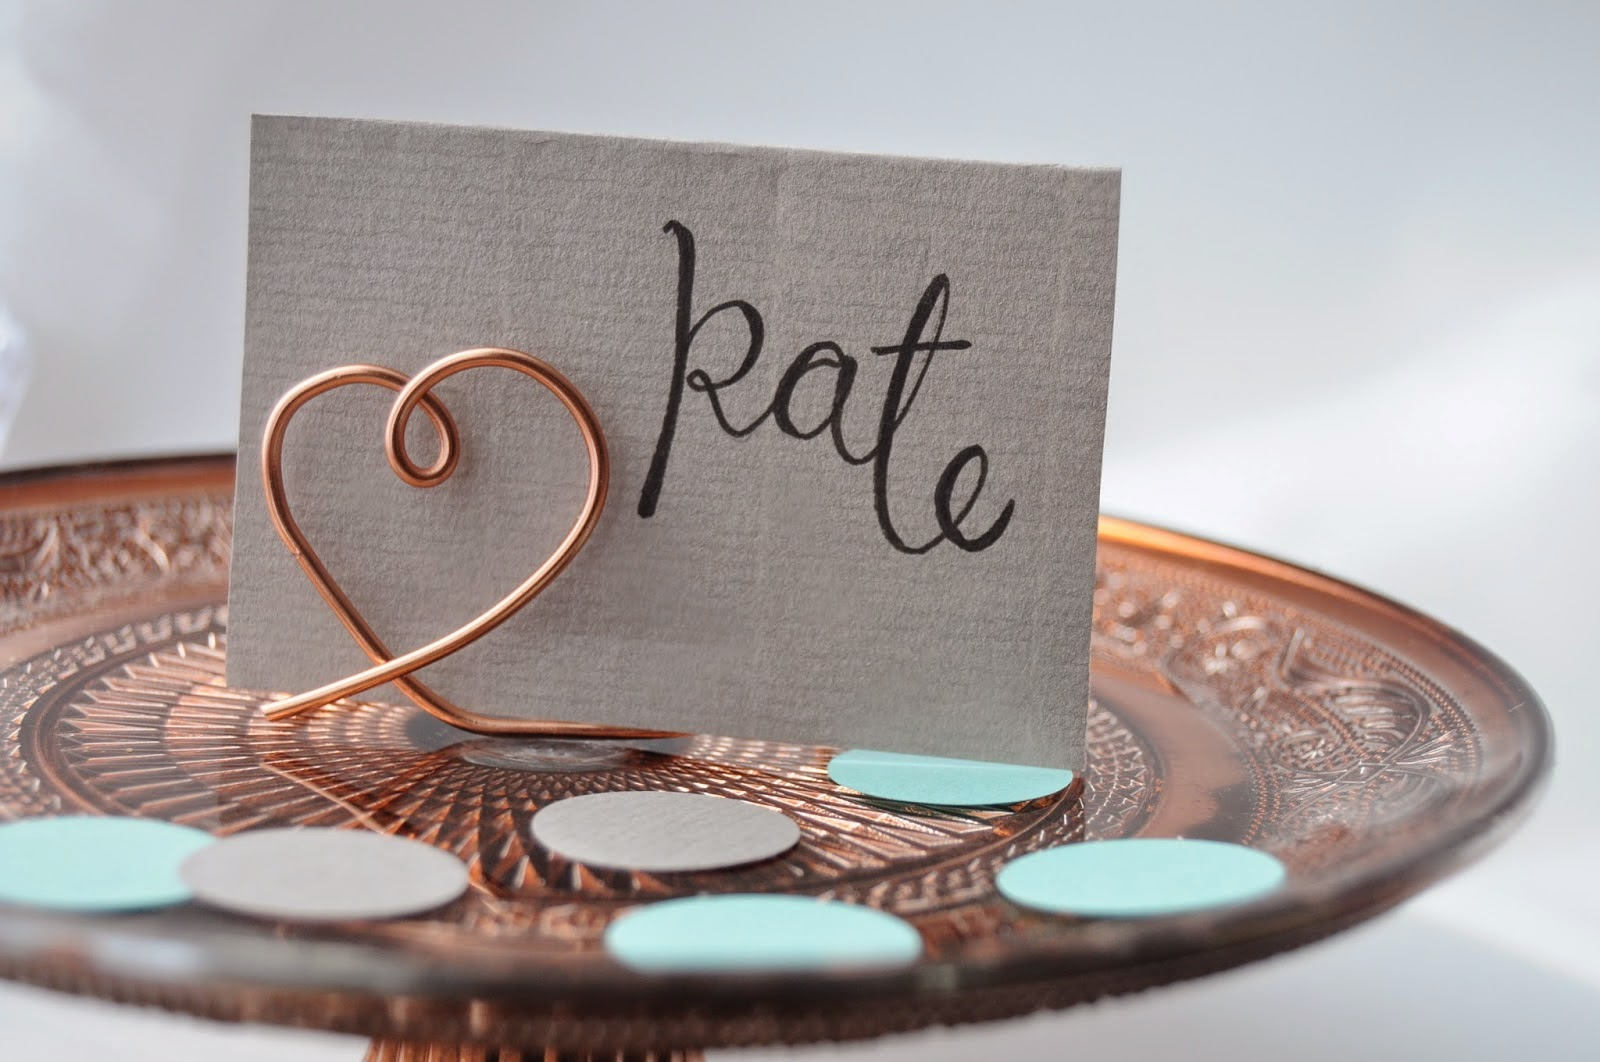 http://thecuriouslifeoflisa.blogspot.co.uk/2015/04/diy-wire-place-card-holders.html